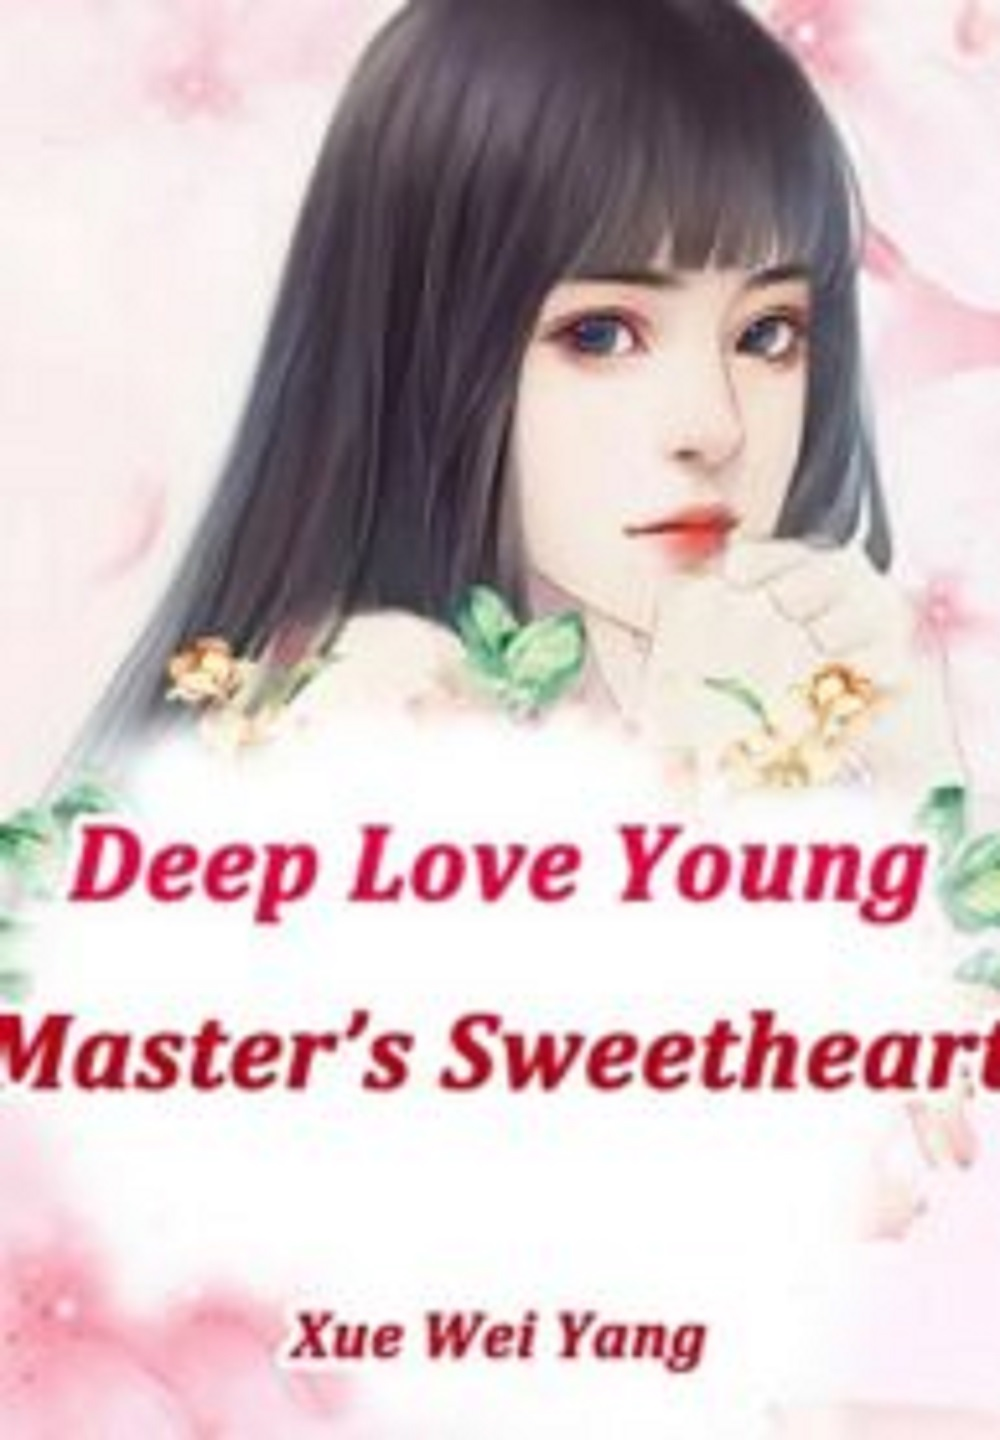 Deep Love: Young Master's Sweetheart Novel Chapter 15 To 16 PDF